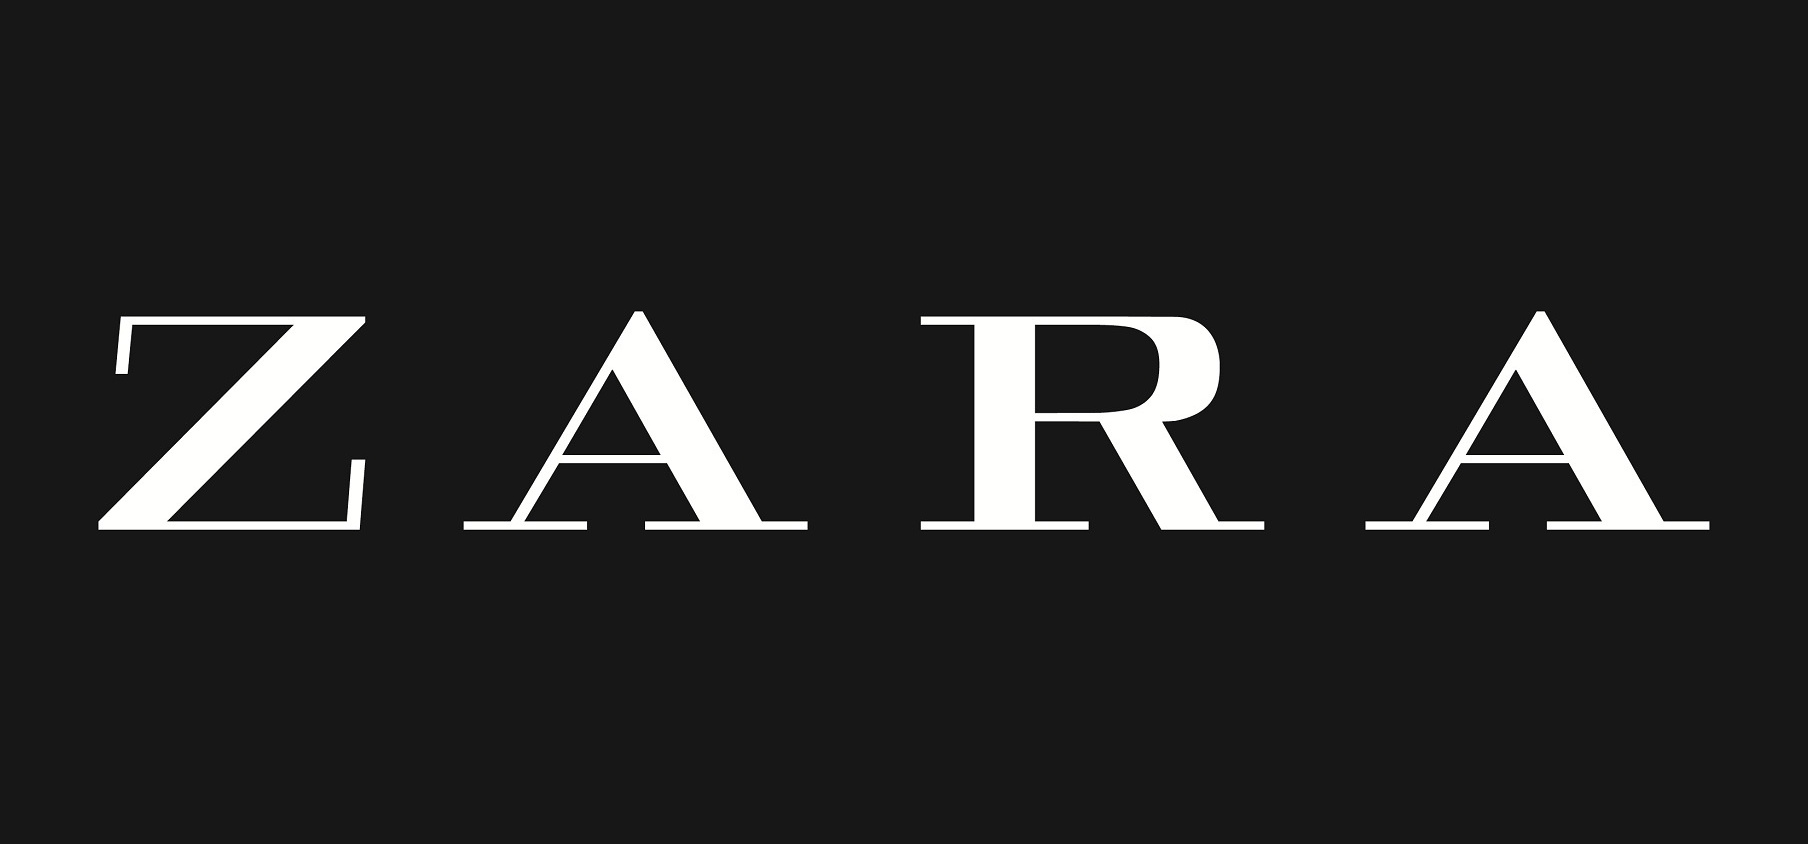 zara it 75 reviews of zara zara is fashion forward and at an affordable price this zara has the biggest selection, they have a stock room the size of a warehouse below the store, so most things are not on the floor due to their floor size.